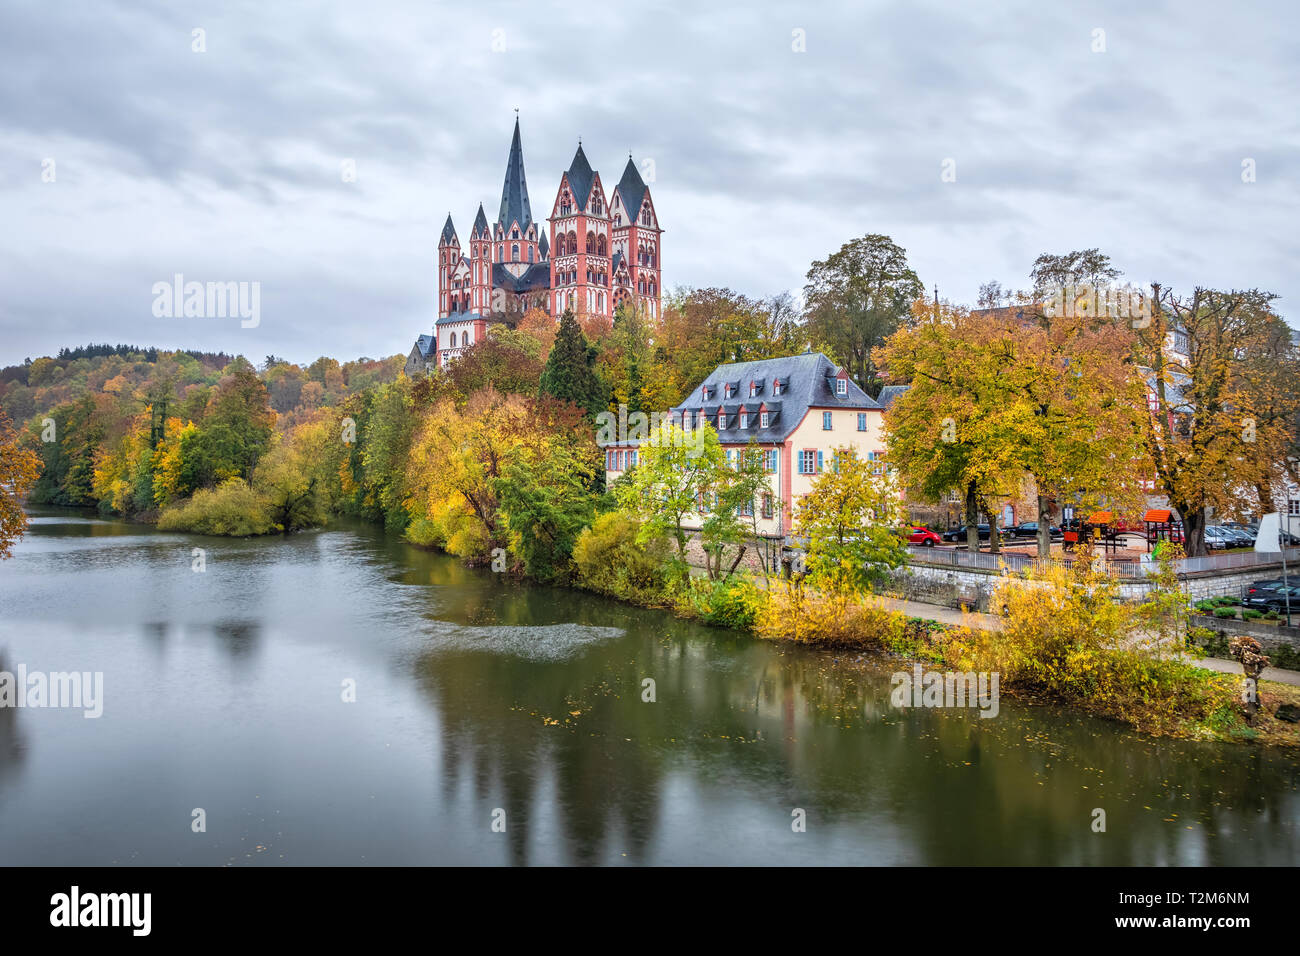 Autumn cityscape of Limburg an der Lahn with river and Limburg Cathedral, Hesse, Germany - Stock Image